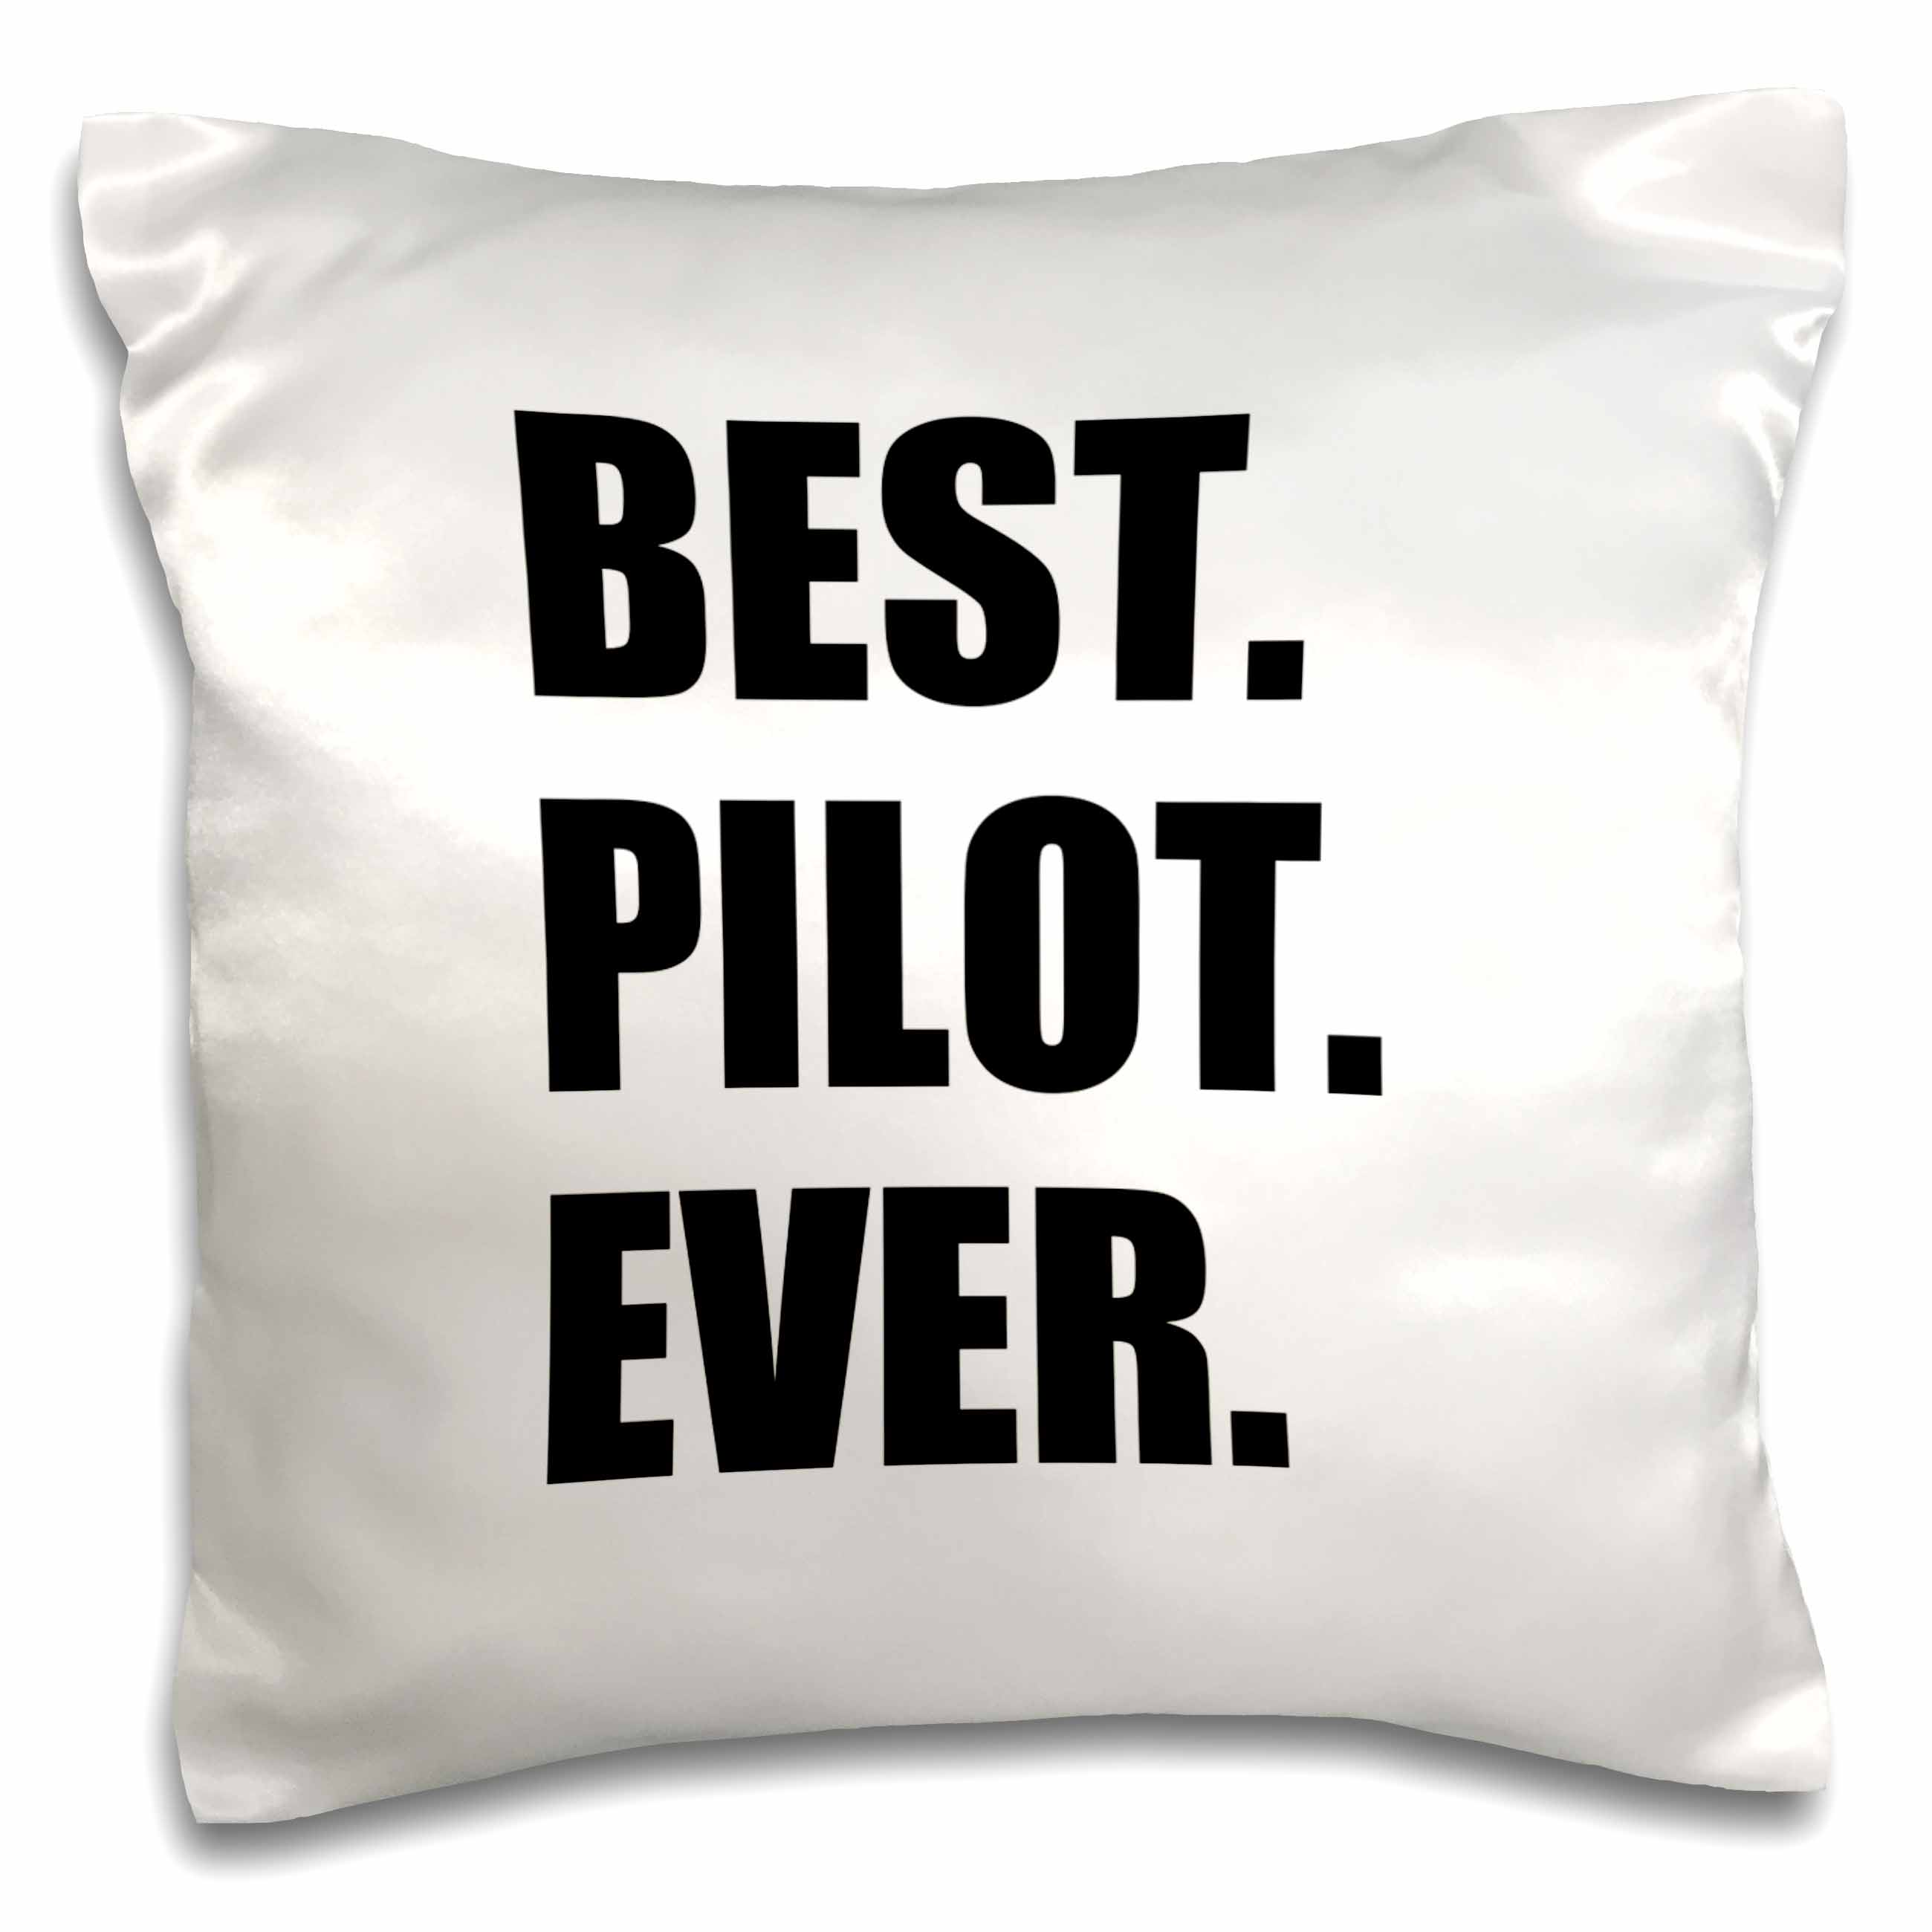 3dRose Best Pilot Ever, fun appreciation gift for talented airplane pilots, Pillow Case, 16 by 16-inch